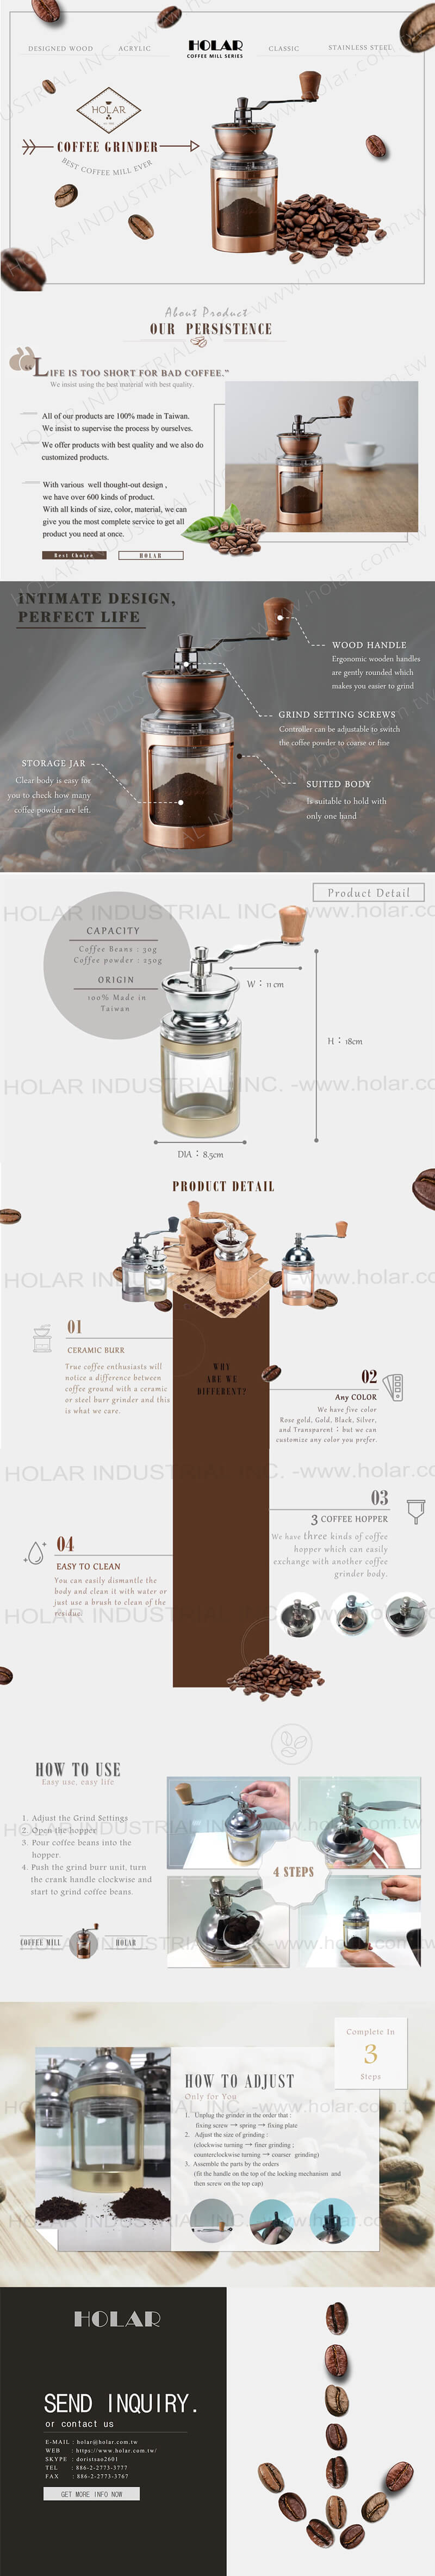 Holar - Coffee Mill Introduction